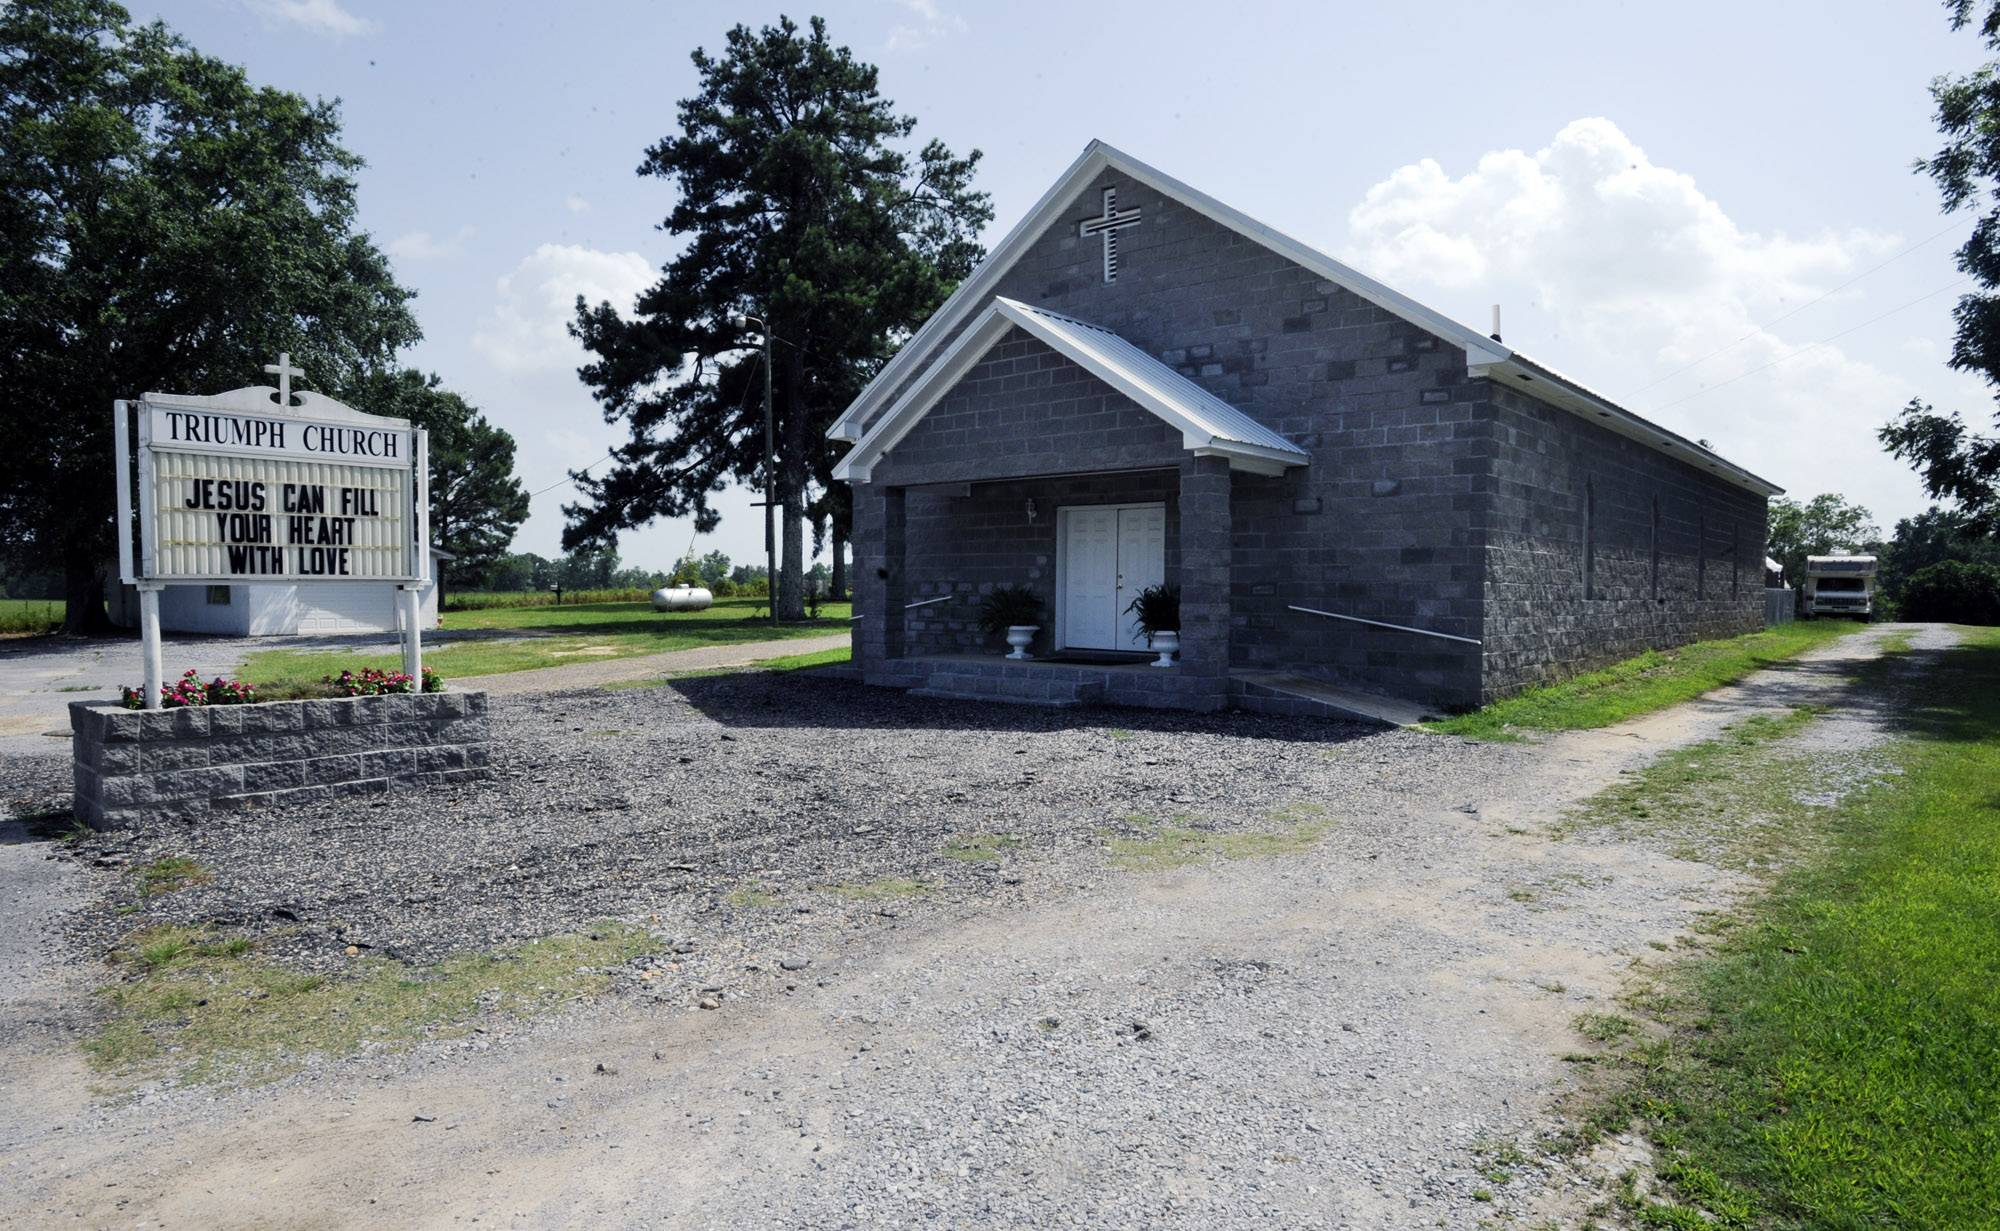 A gravel drive leads to a camp inhabited by convicted sex offenders behind Triumph Church near Clanton, Ala., on Monday. A law that took effect the next day shut down the refuge.